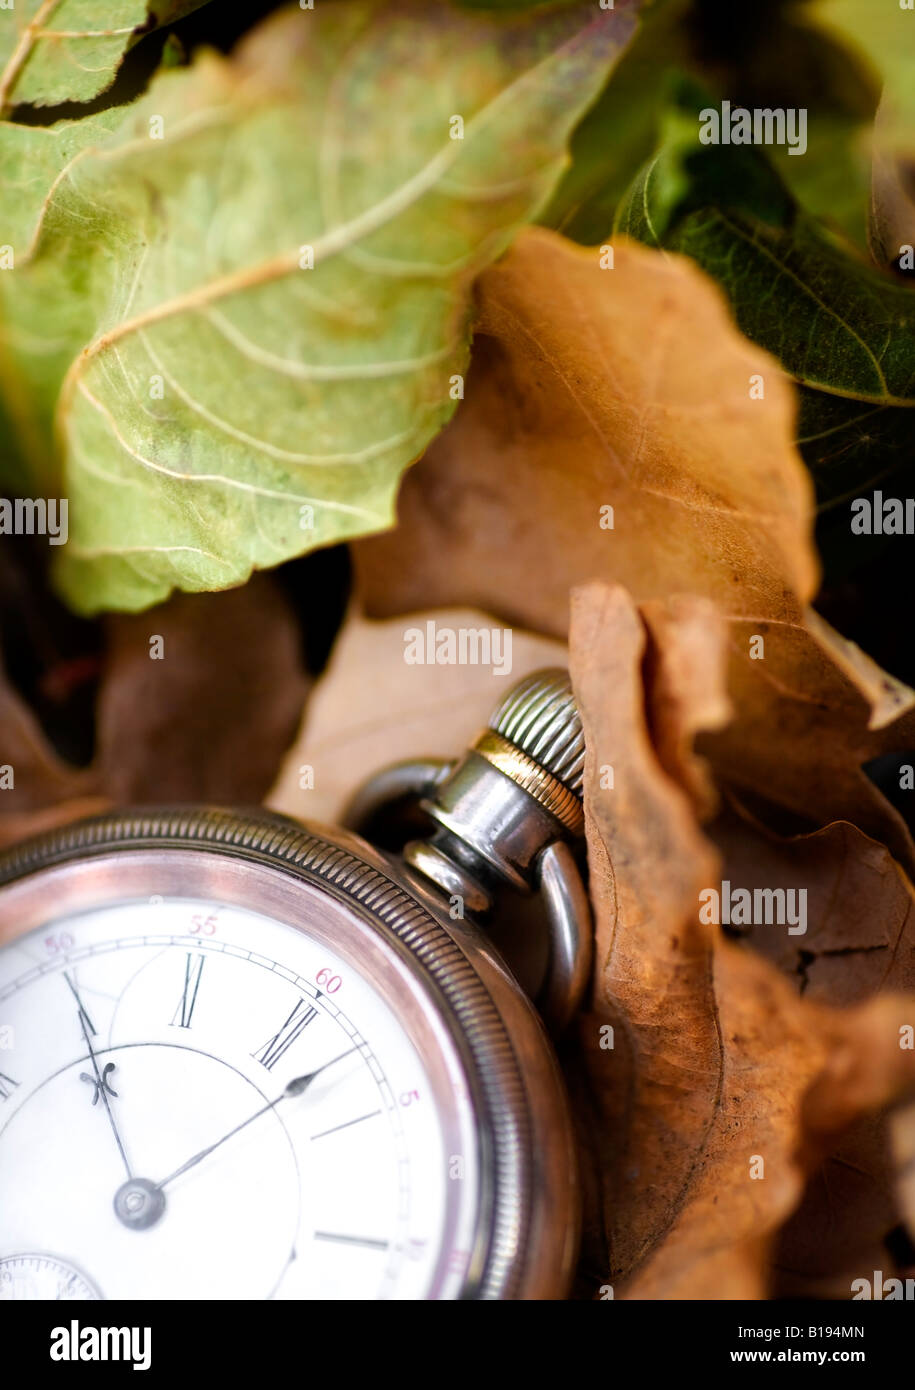 Pocket watch on leaves - Stock Image